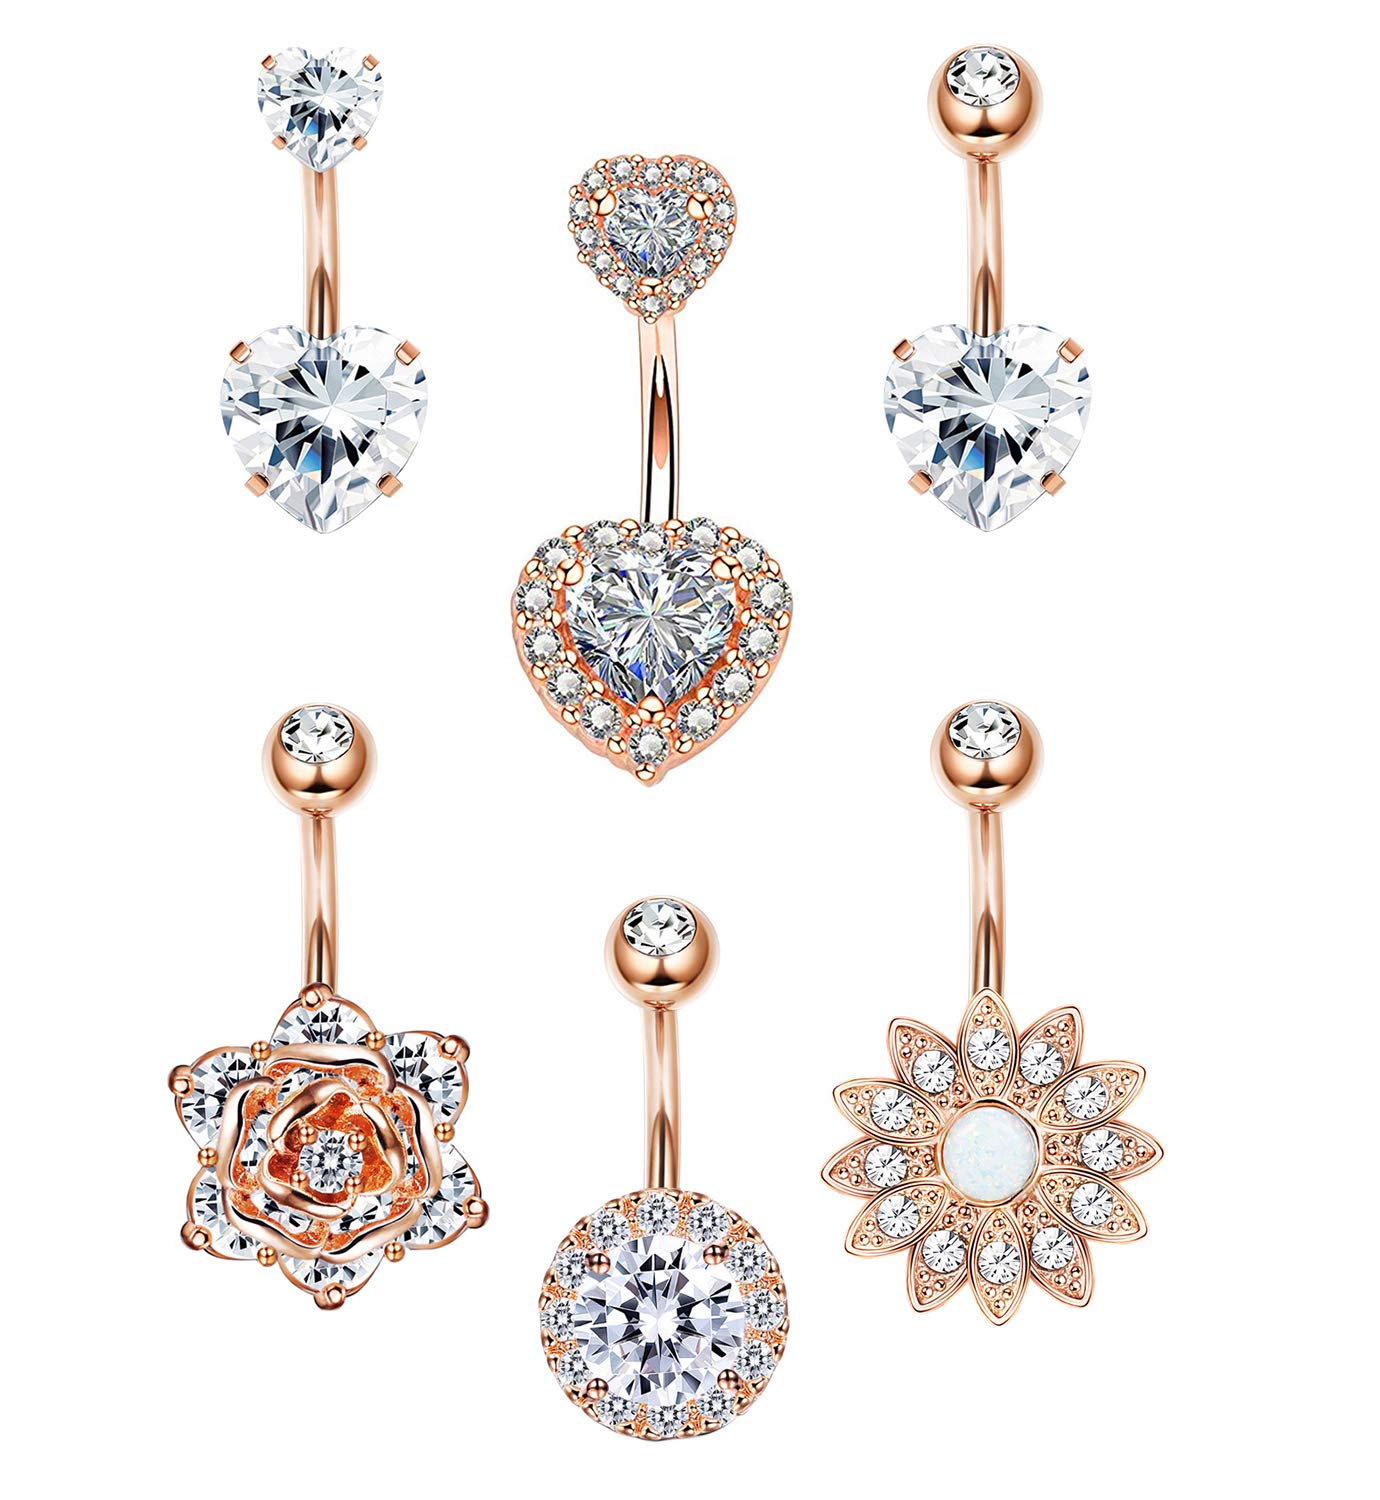 LOYALLOOK 6PCS Stainless Steel Belly Button Rings Womens Girls CZ Navel Rings Curved Barbell Rings Double Heart CZ Body Piercing 14G Rose Gold Tone by LOYALLOOK